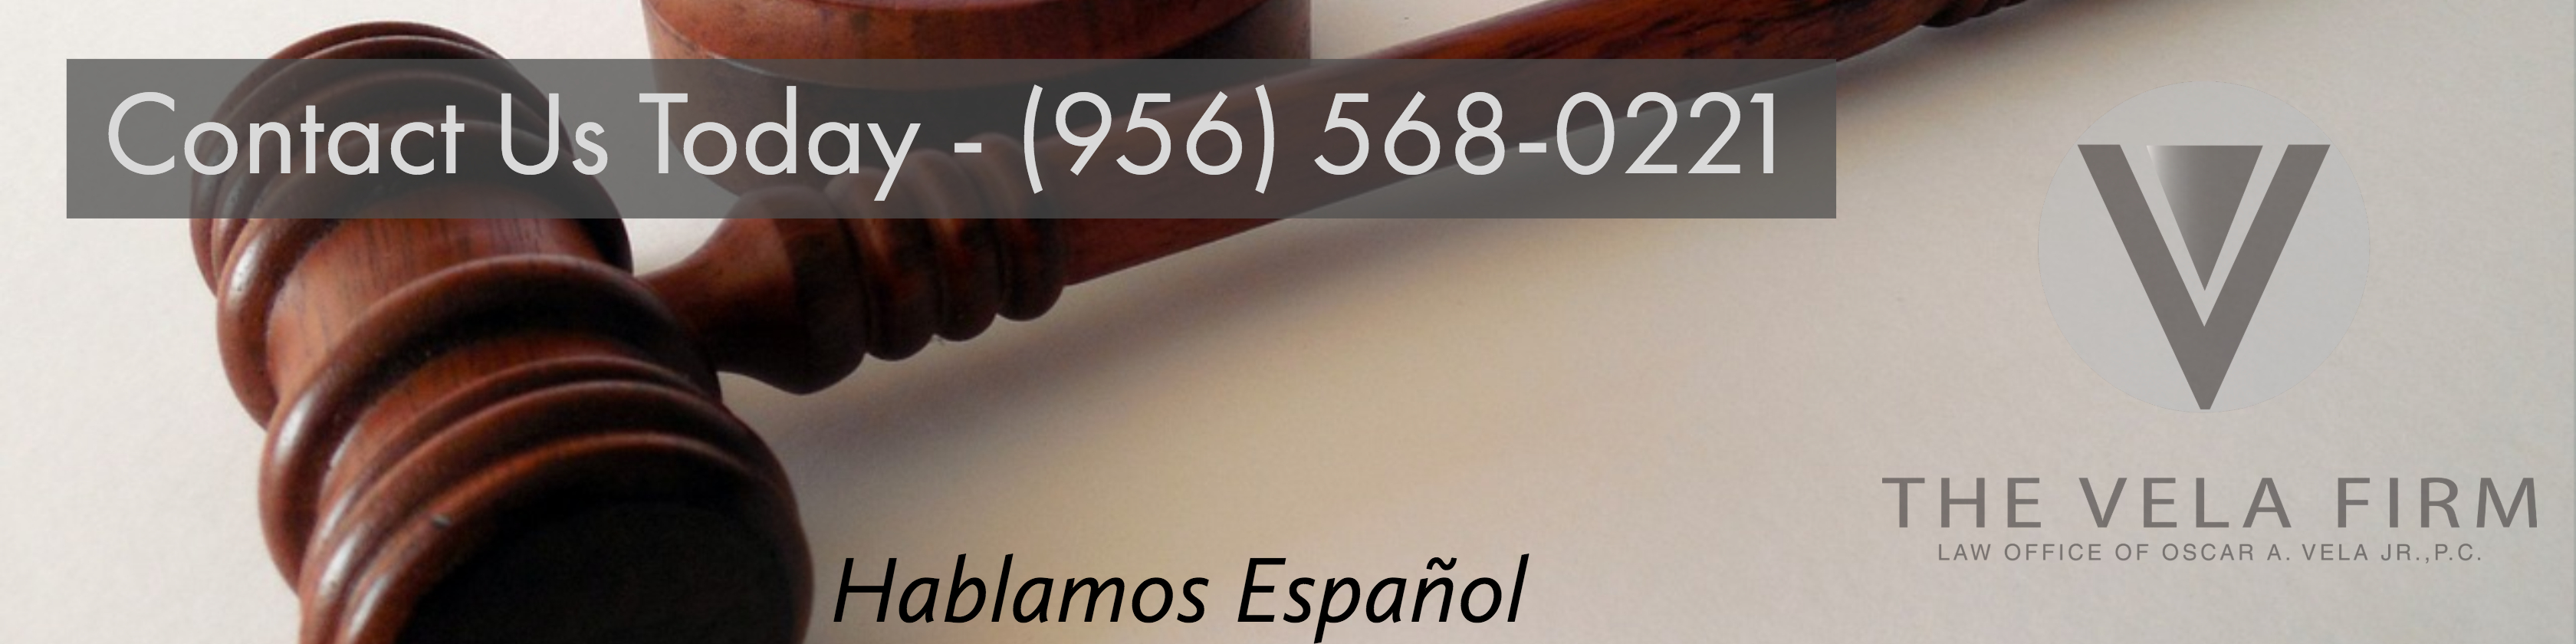 Banner with a link to call The Law Office of Oscar A. Vela Jr., P.C.